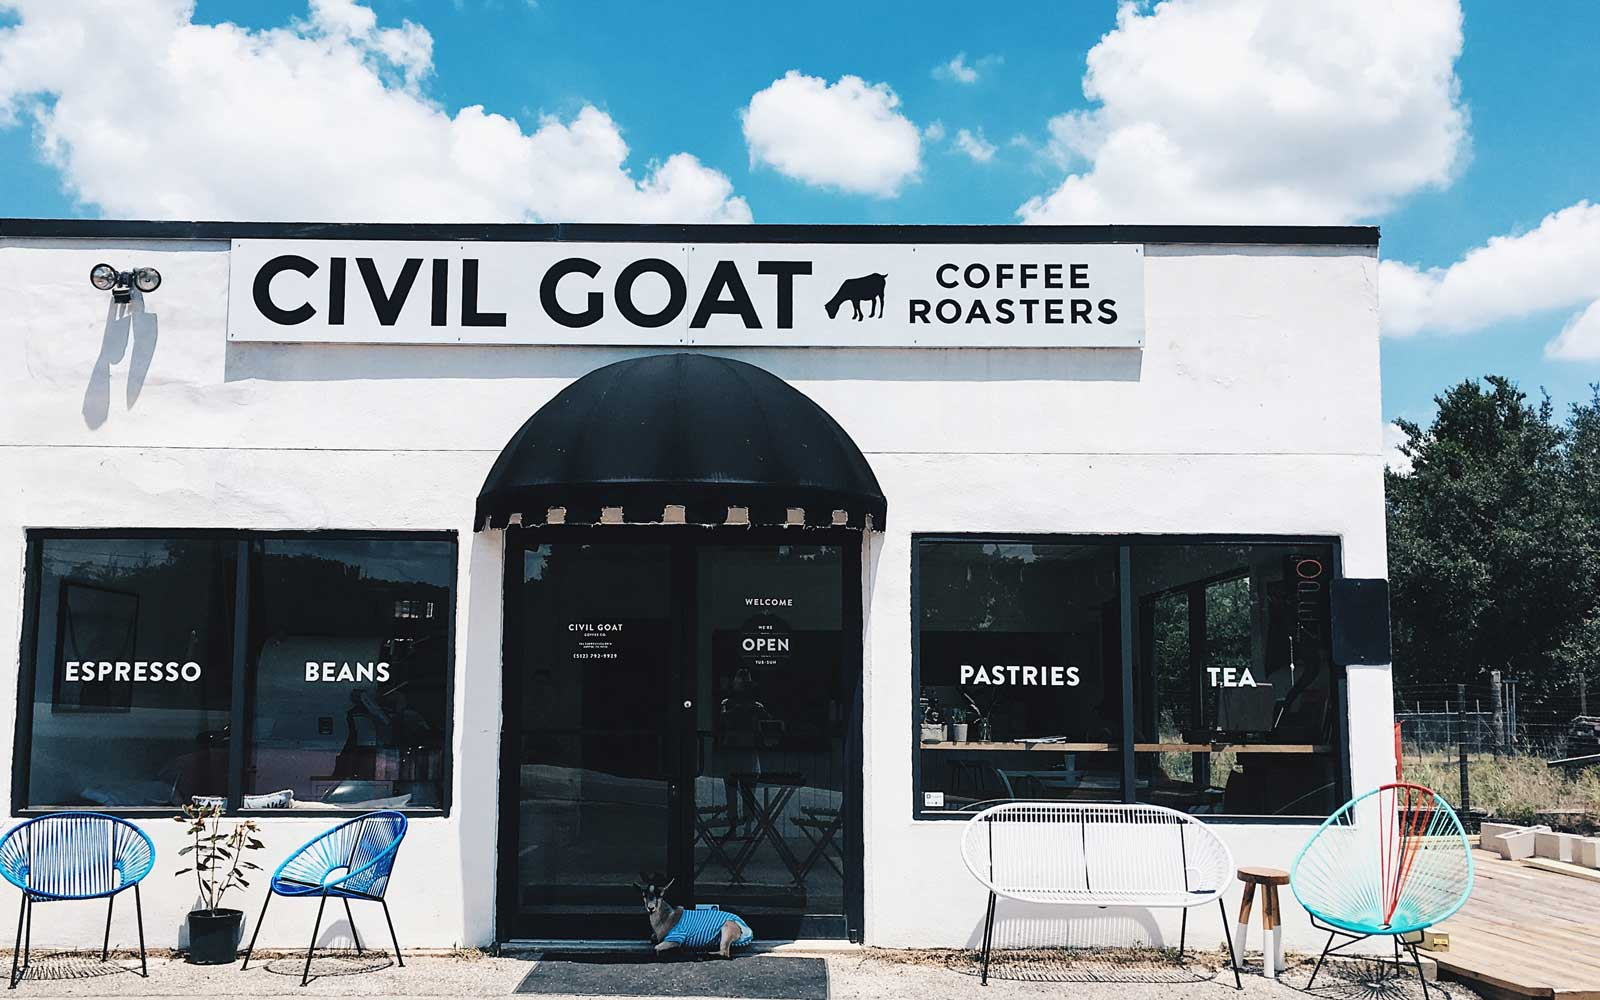 Meet Butters, an Adorable Pygmy Goat Who Is the Mascot for This Austin Coffee Shop